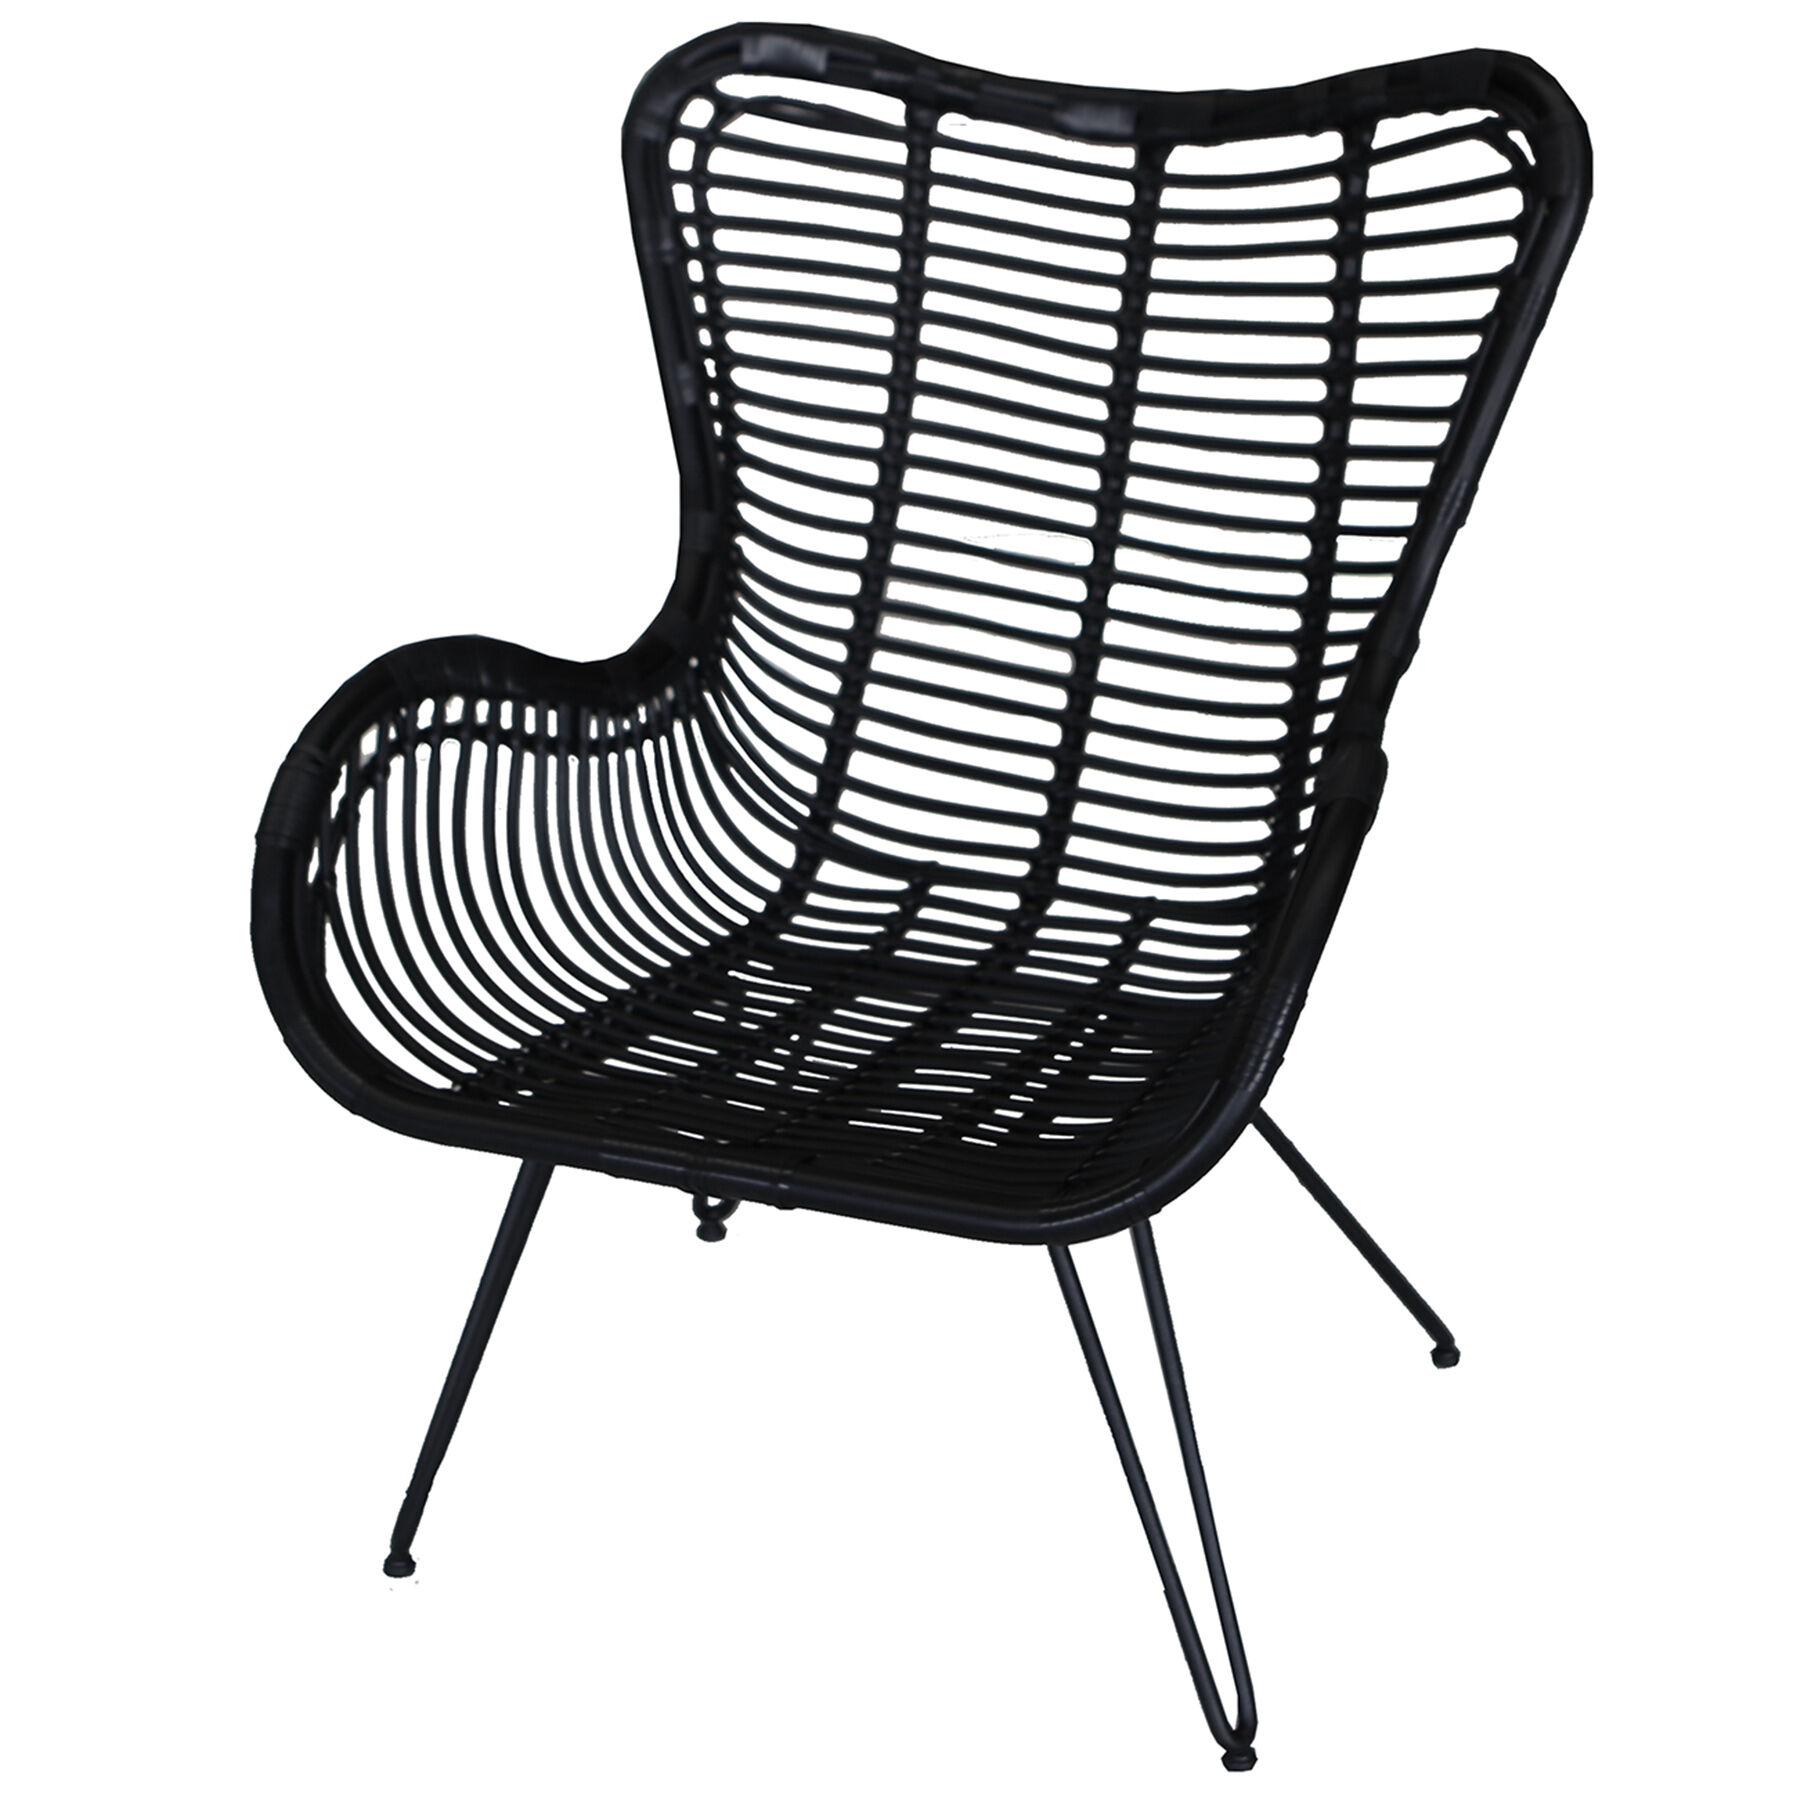 black rattan chair bedroom stool eliza at home